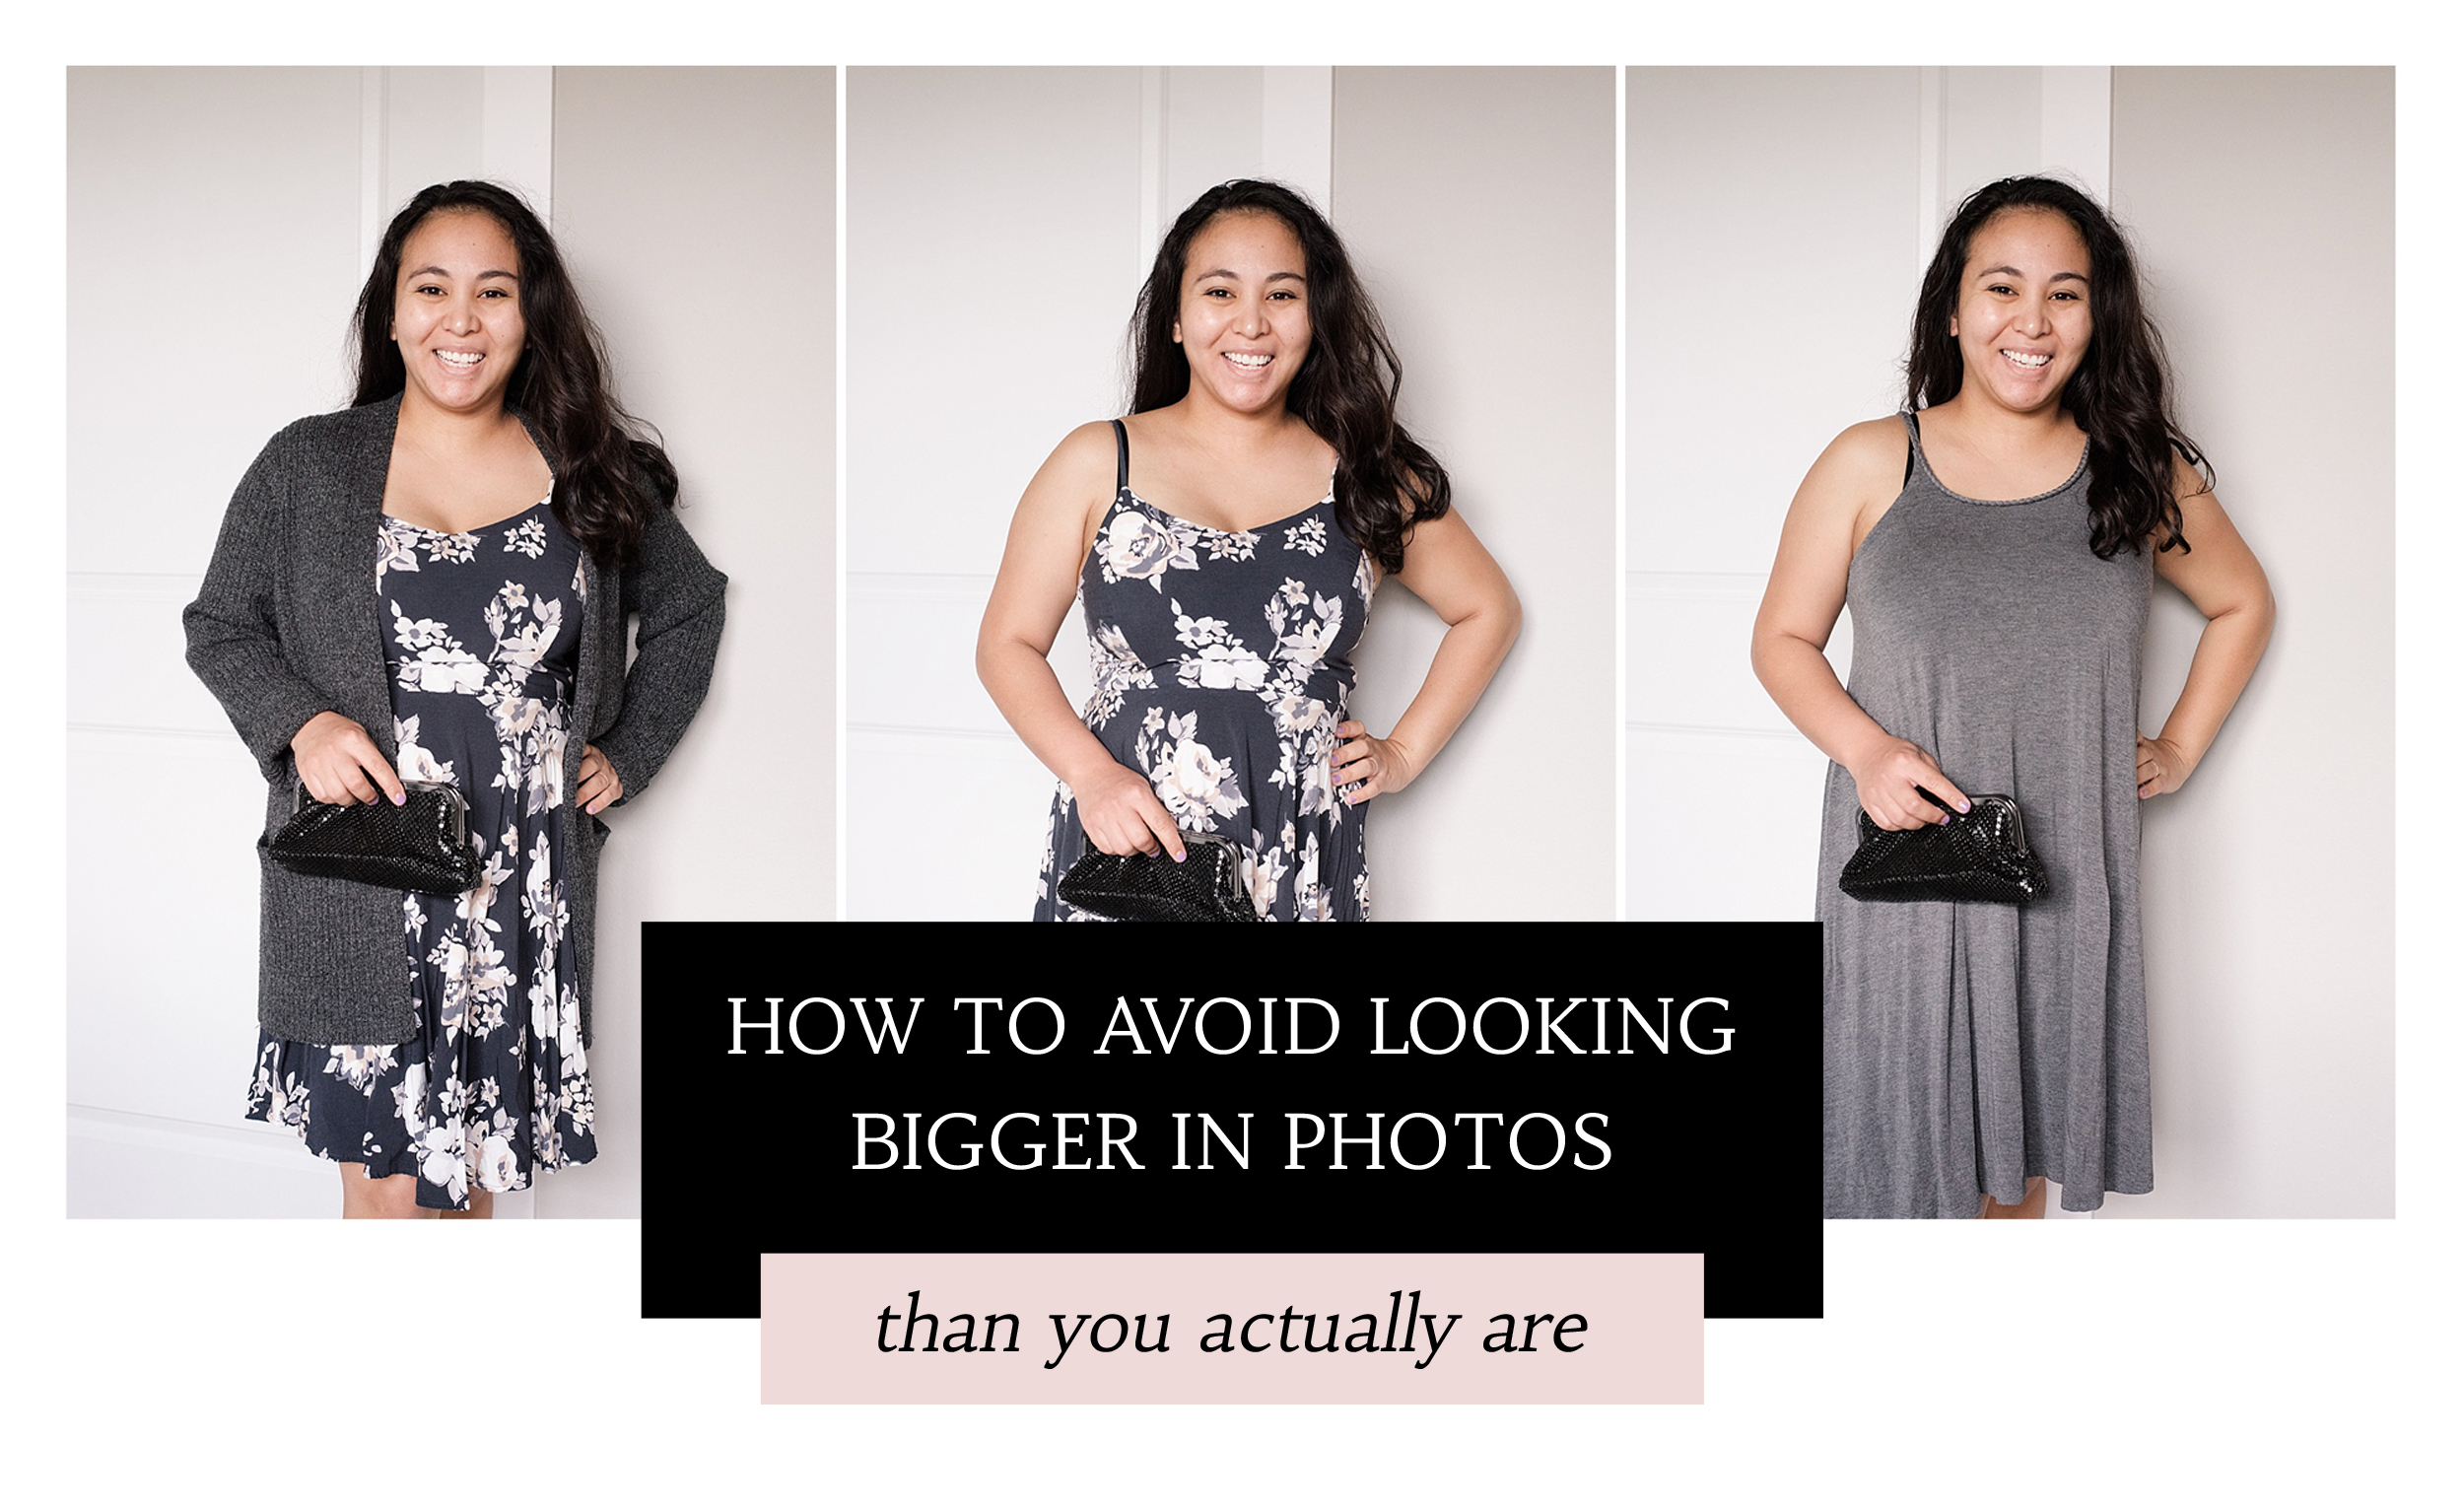 How_to_avoid_looking_bigger_in_photos_than_you_actually_are.jpg